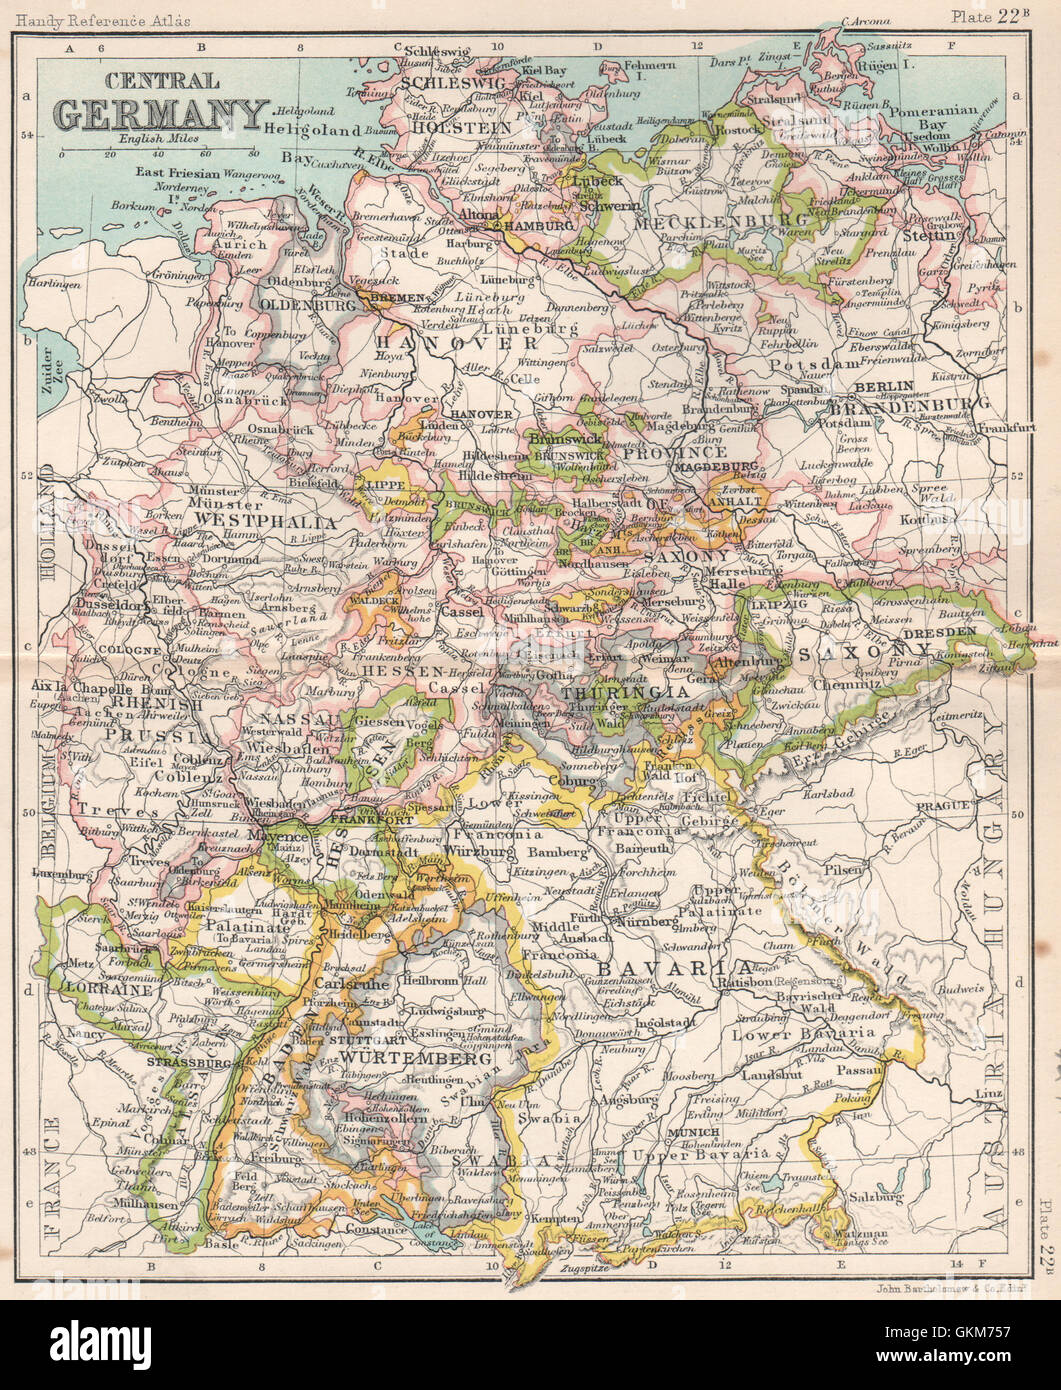 Map Of Central Germany.Central Germany Showing States Bartholomew 1904 Antique Map Stock